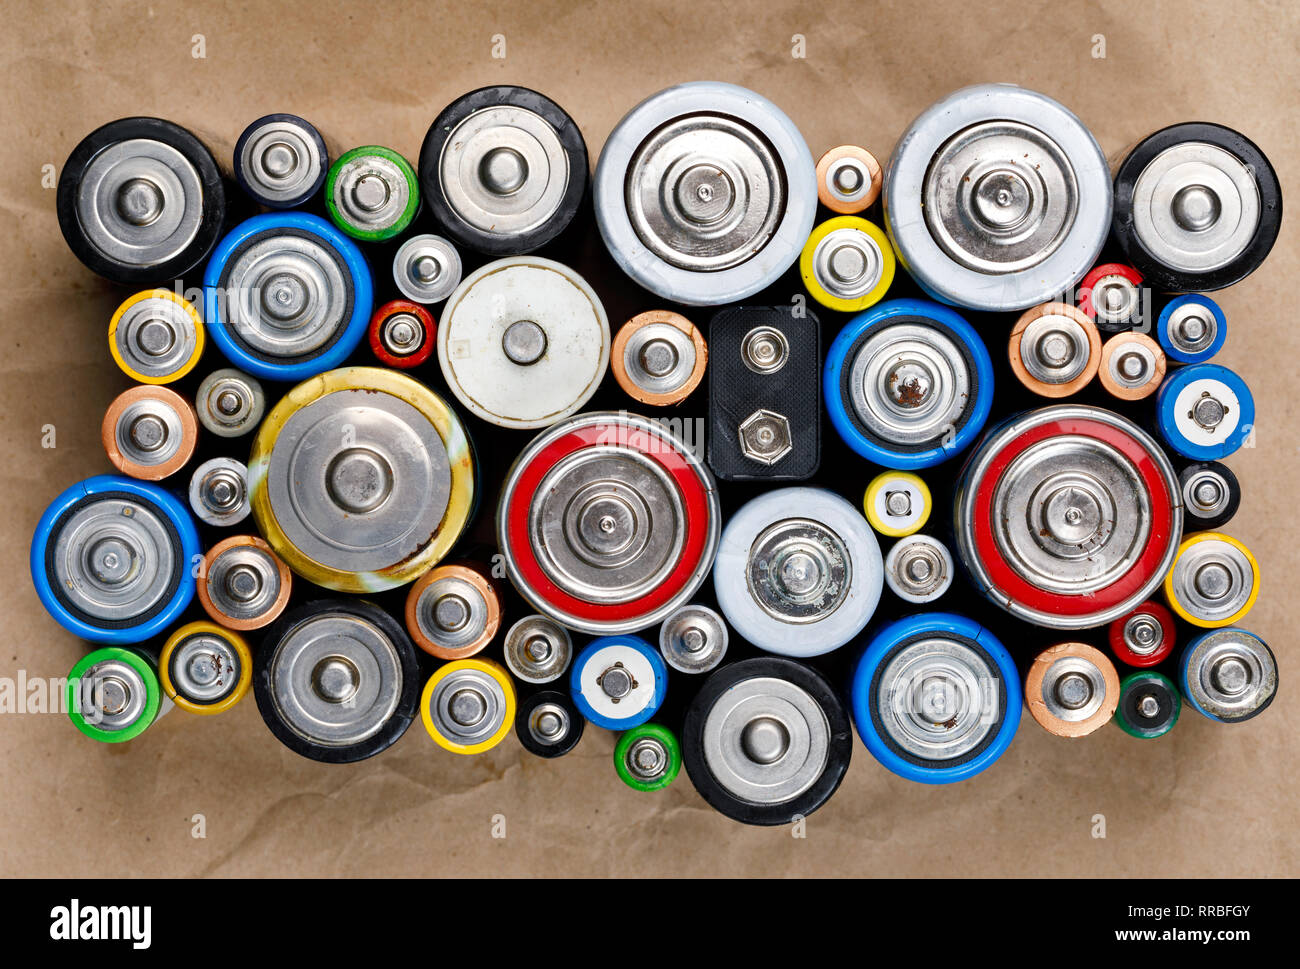 Used Alkaline batteries of various types (C AA AAA D 9V) on recycled paper ready for recycling - toxic waste and environmental issues concept - Stock Image